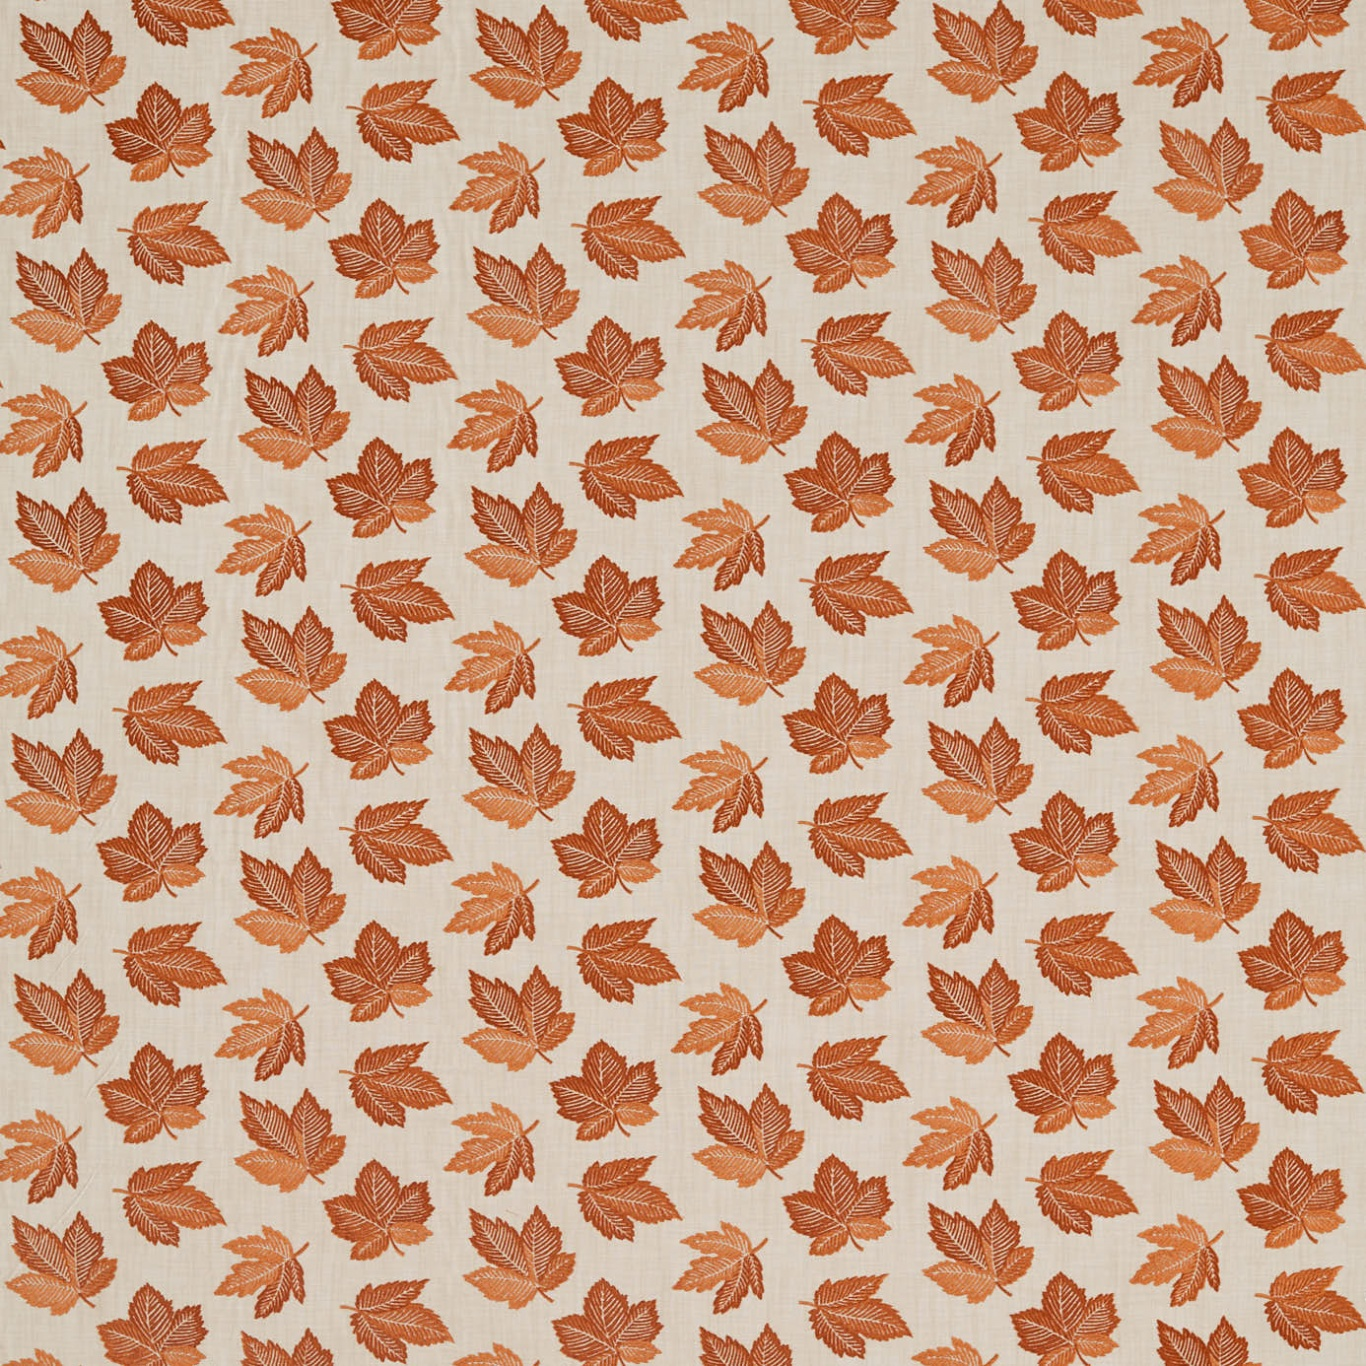 Image of Sanderson Flannery Russet Curtain Fabric 236728